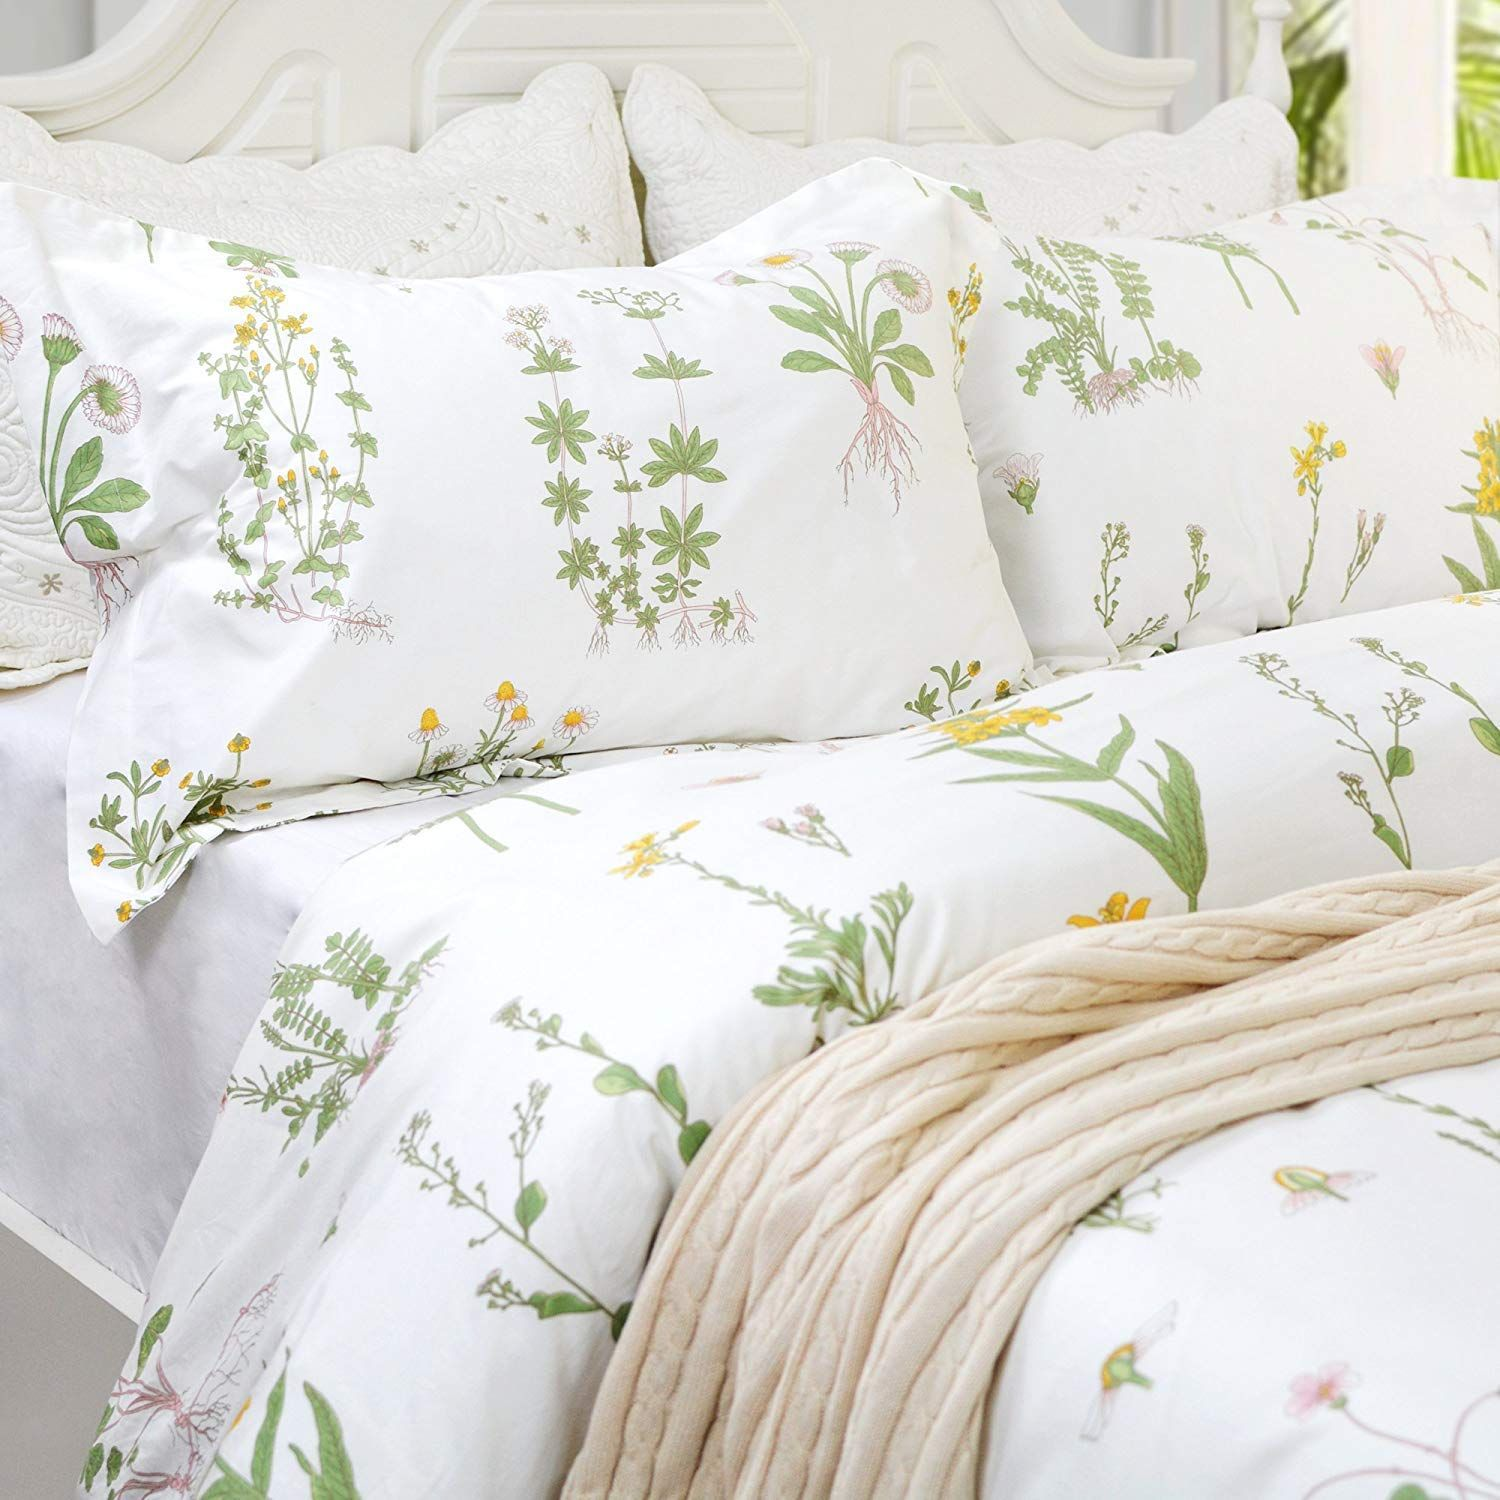 21 Bedding Ideas For Your College Dorm images